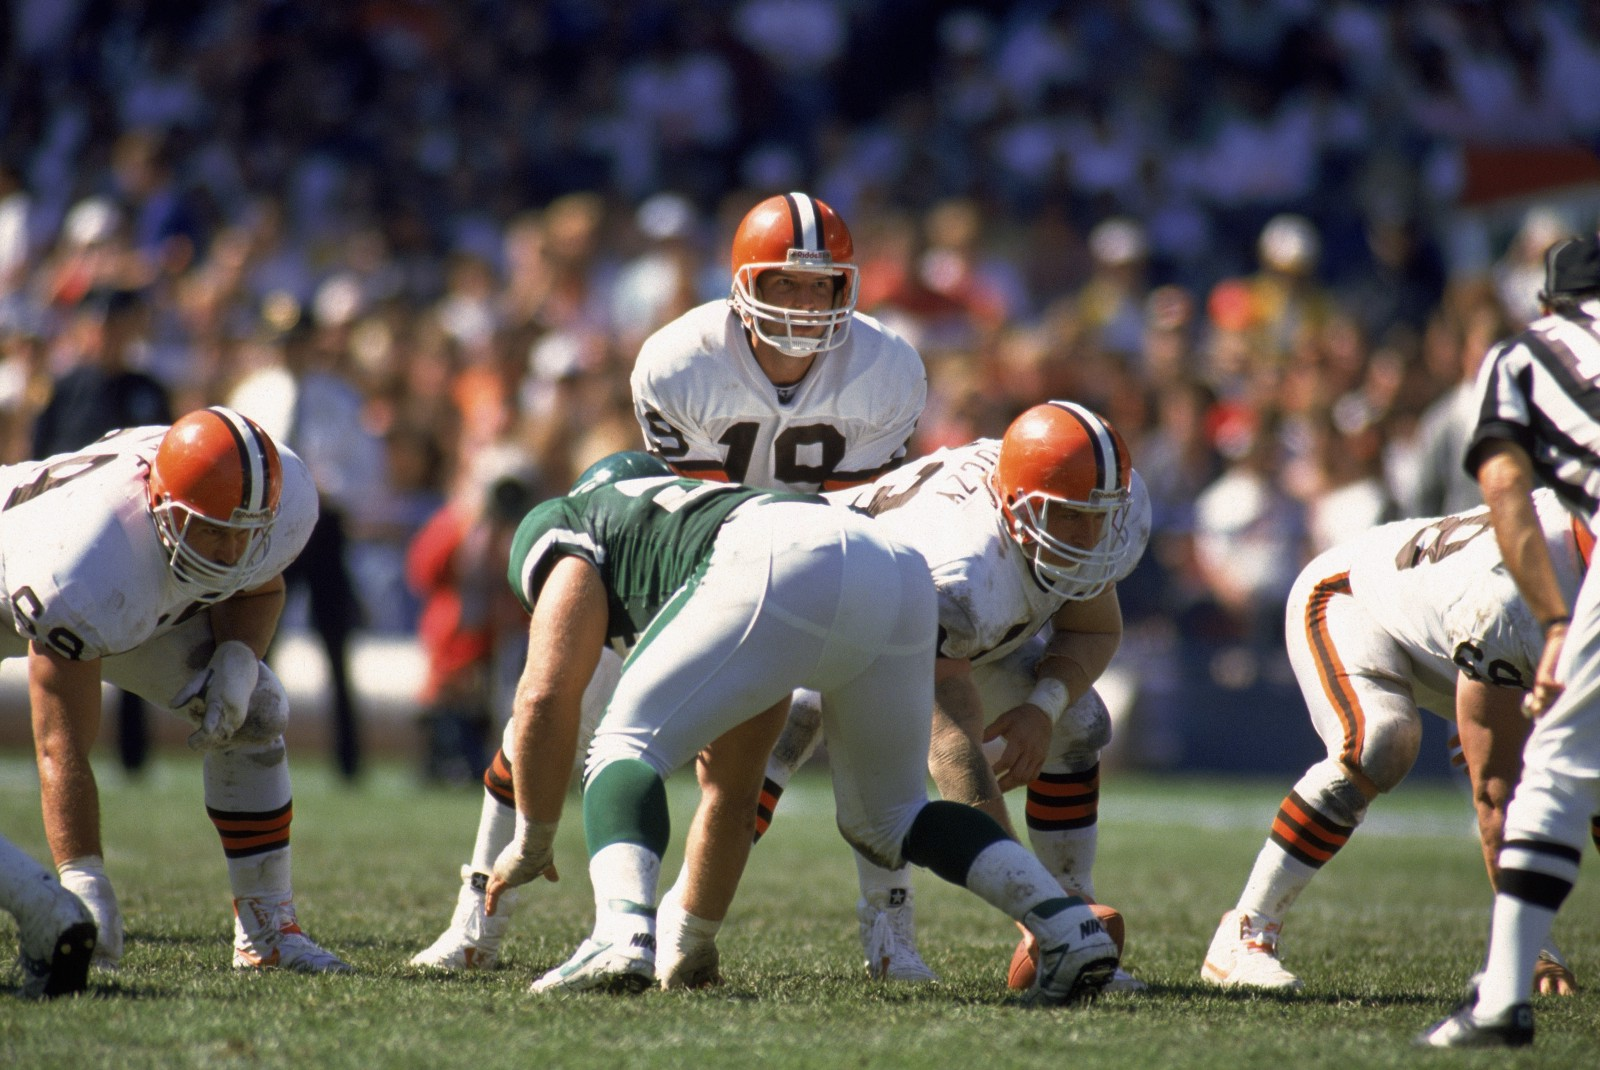 Bernie Kosar Was Probably The Last Good Starting Quarterback Cleveland Browns Had Given Purgatory They Have Been Through Since He Moved